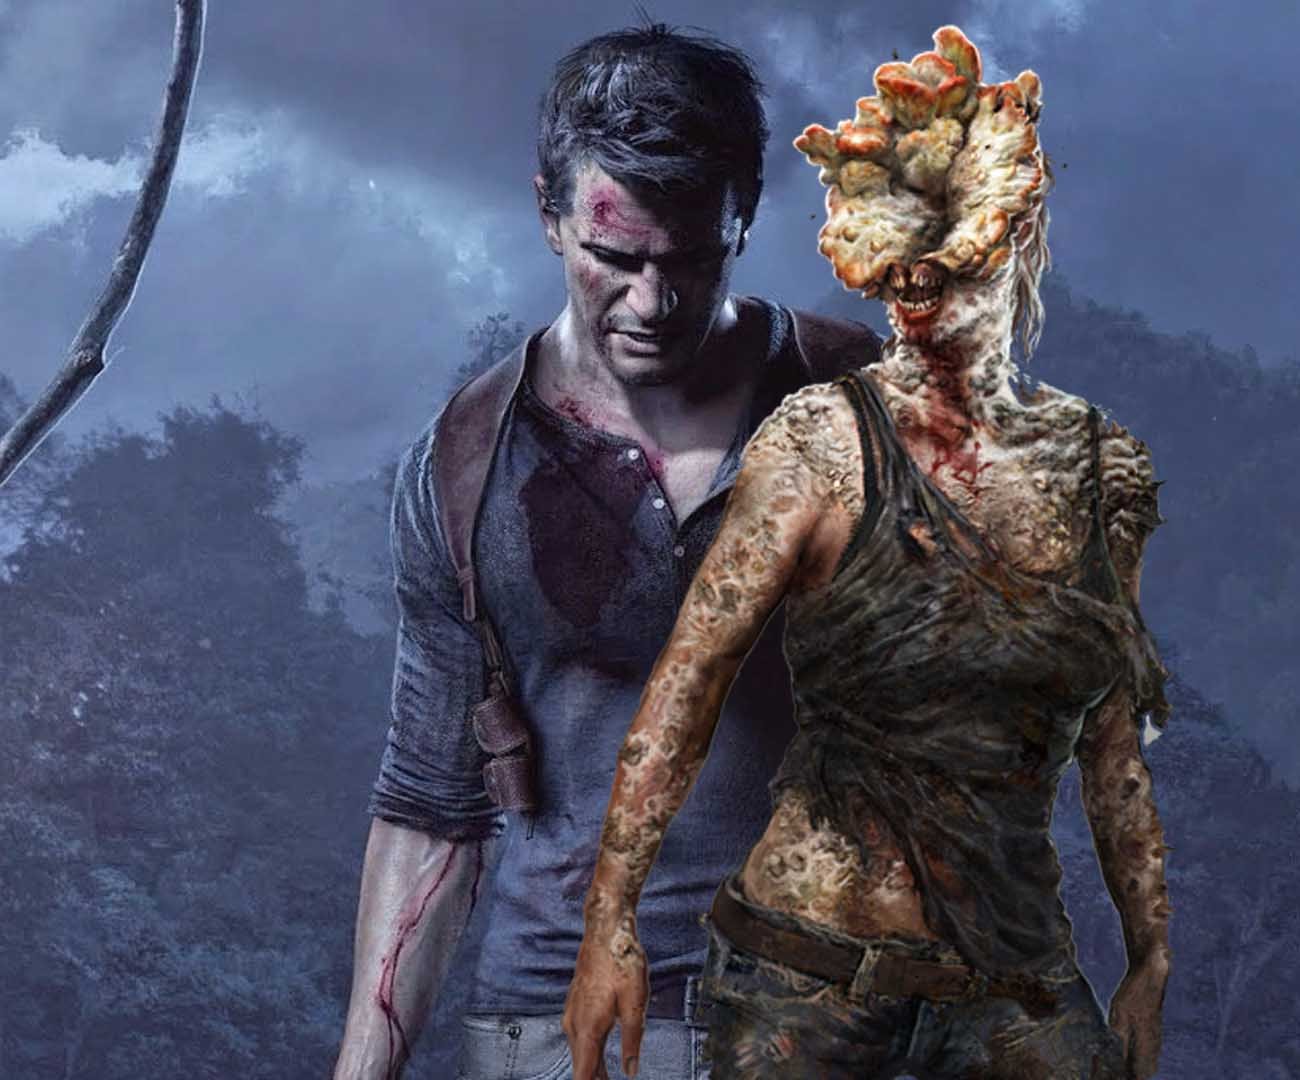 Odkryto nowy Easter Egg z The Last of Us w Uncharted 4